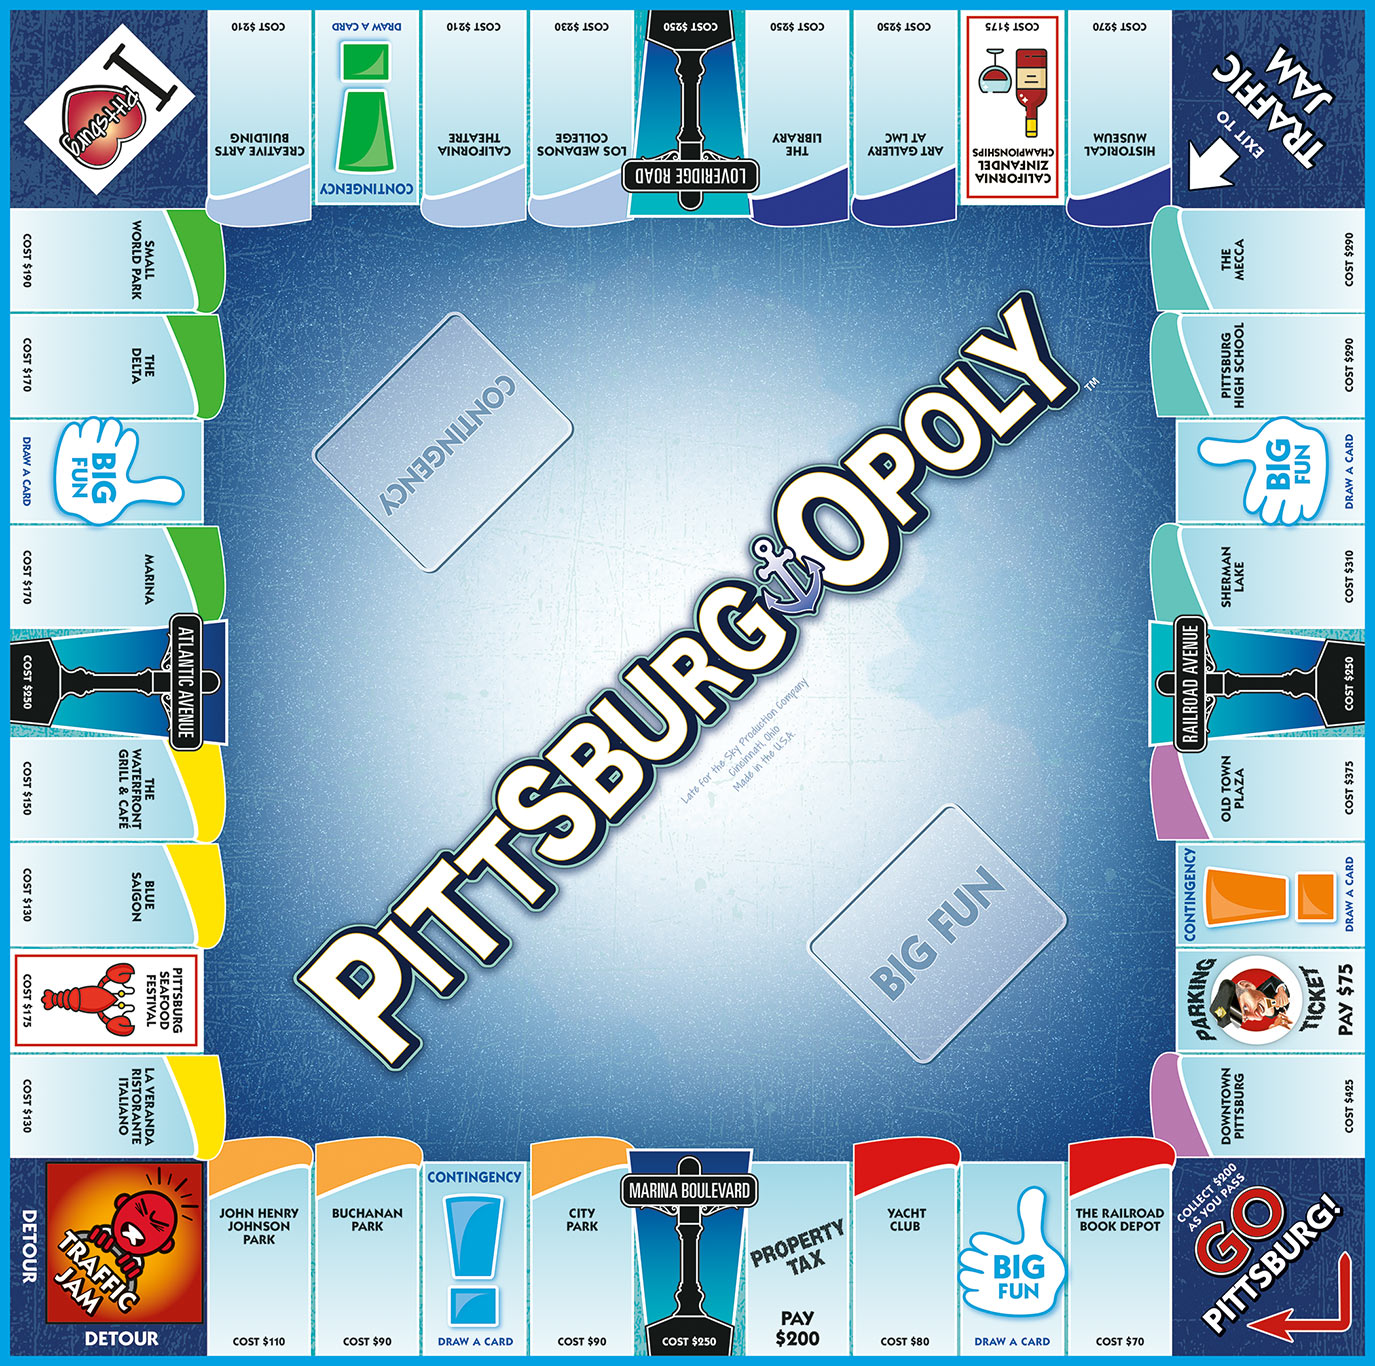 PITTSBURG-OPOLY Board Game